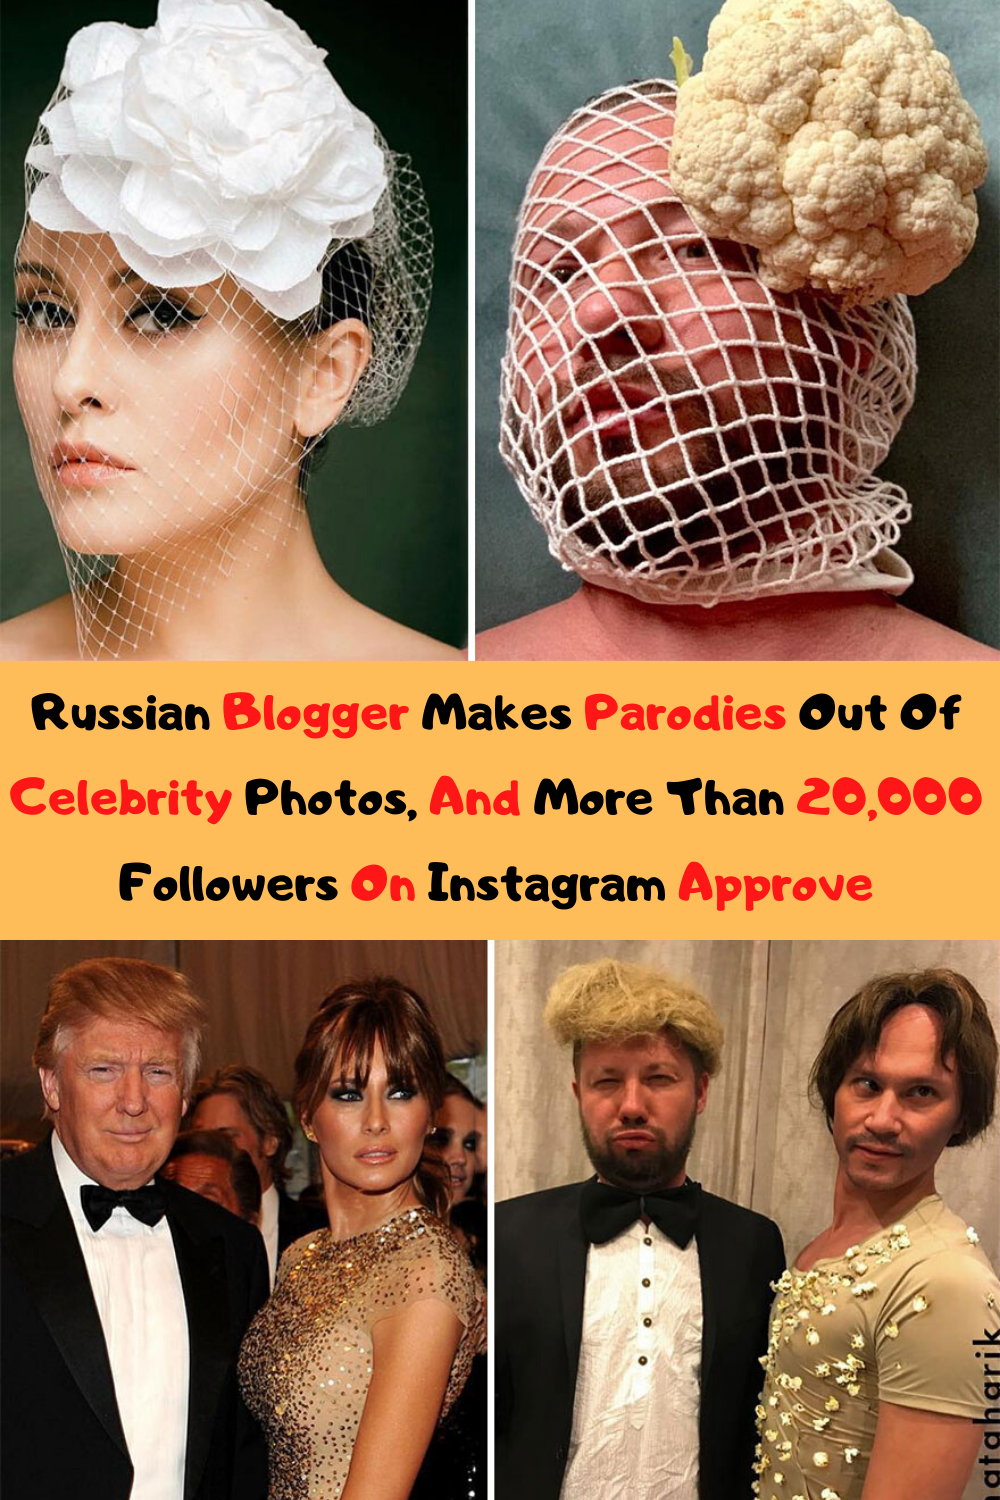 Russian Blogger Makes Parodies Out Of Celebrity Photos, And More Than 20,000 Followers On Instagram